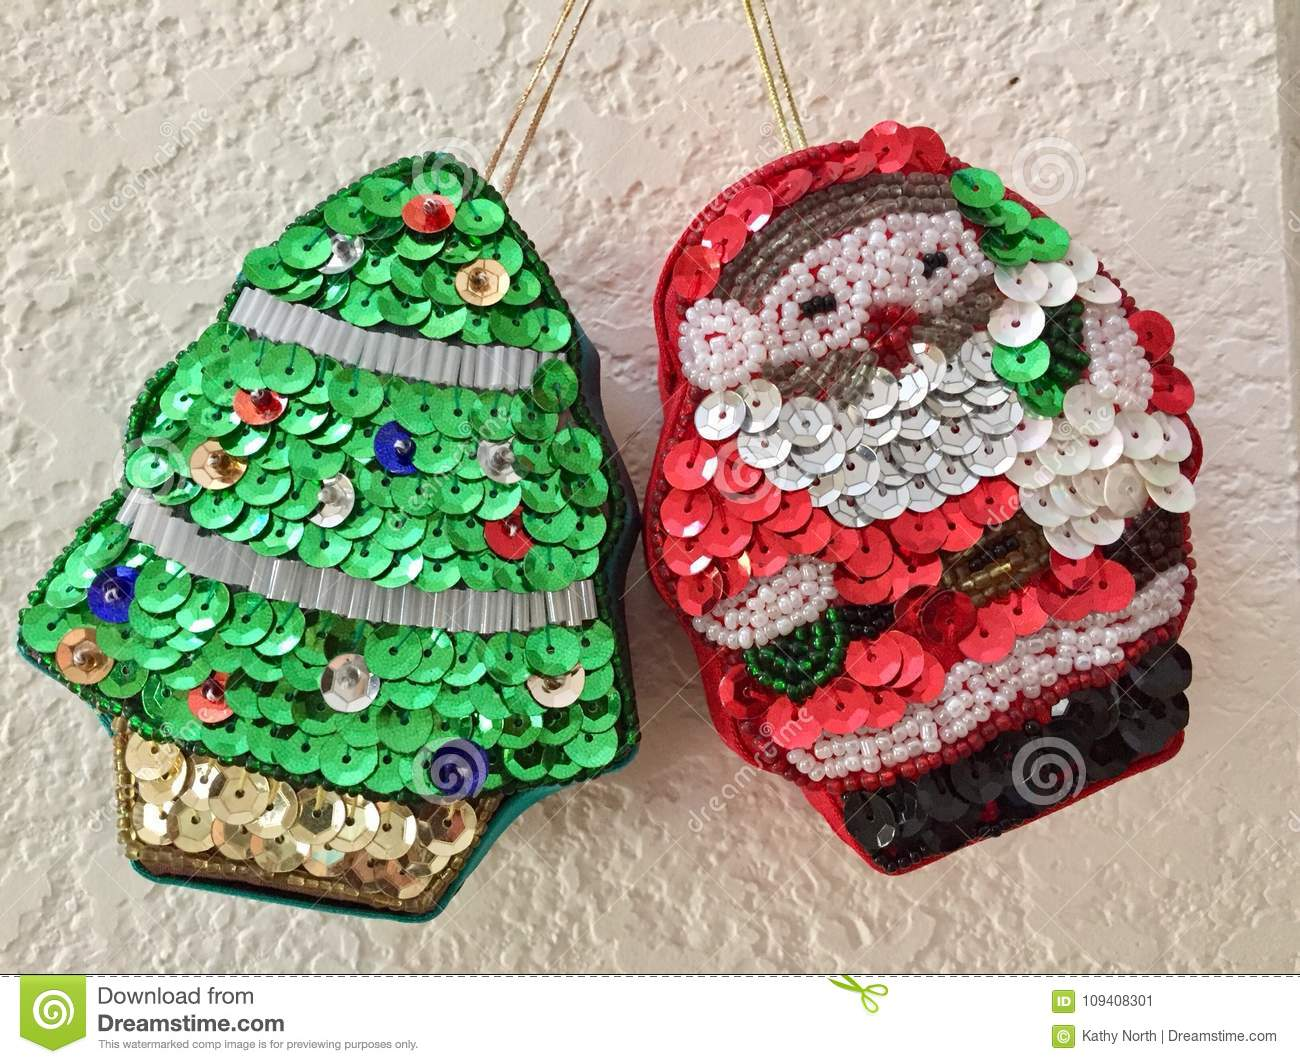 Sequined holiday ornaments stock image. Image of ornaments - 109408301